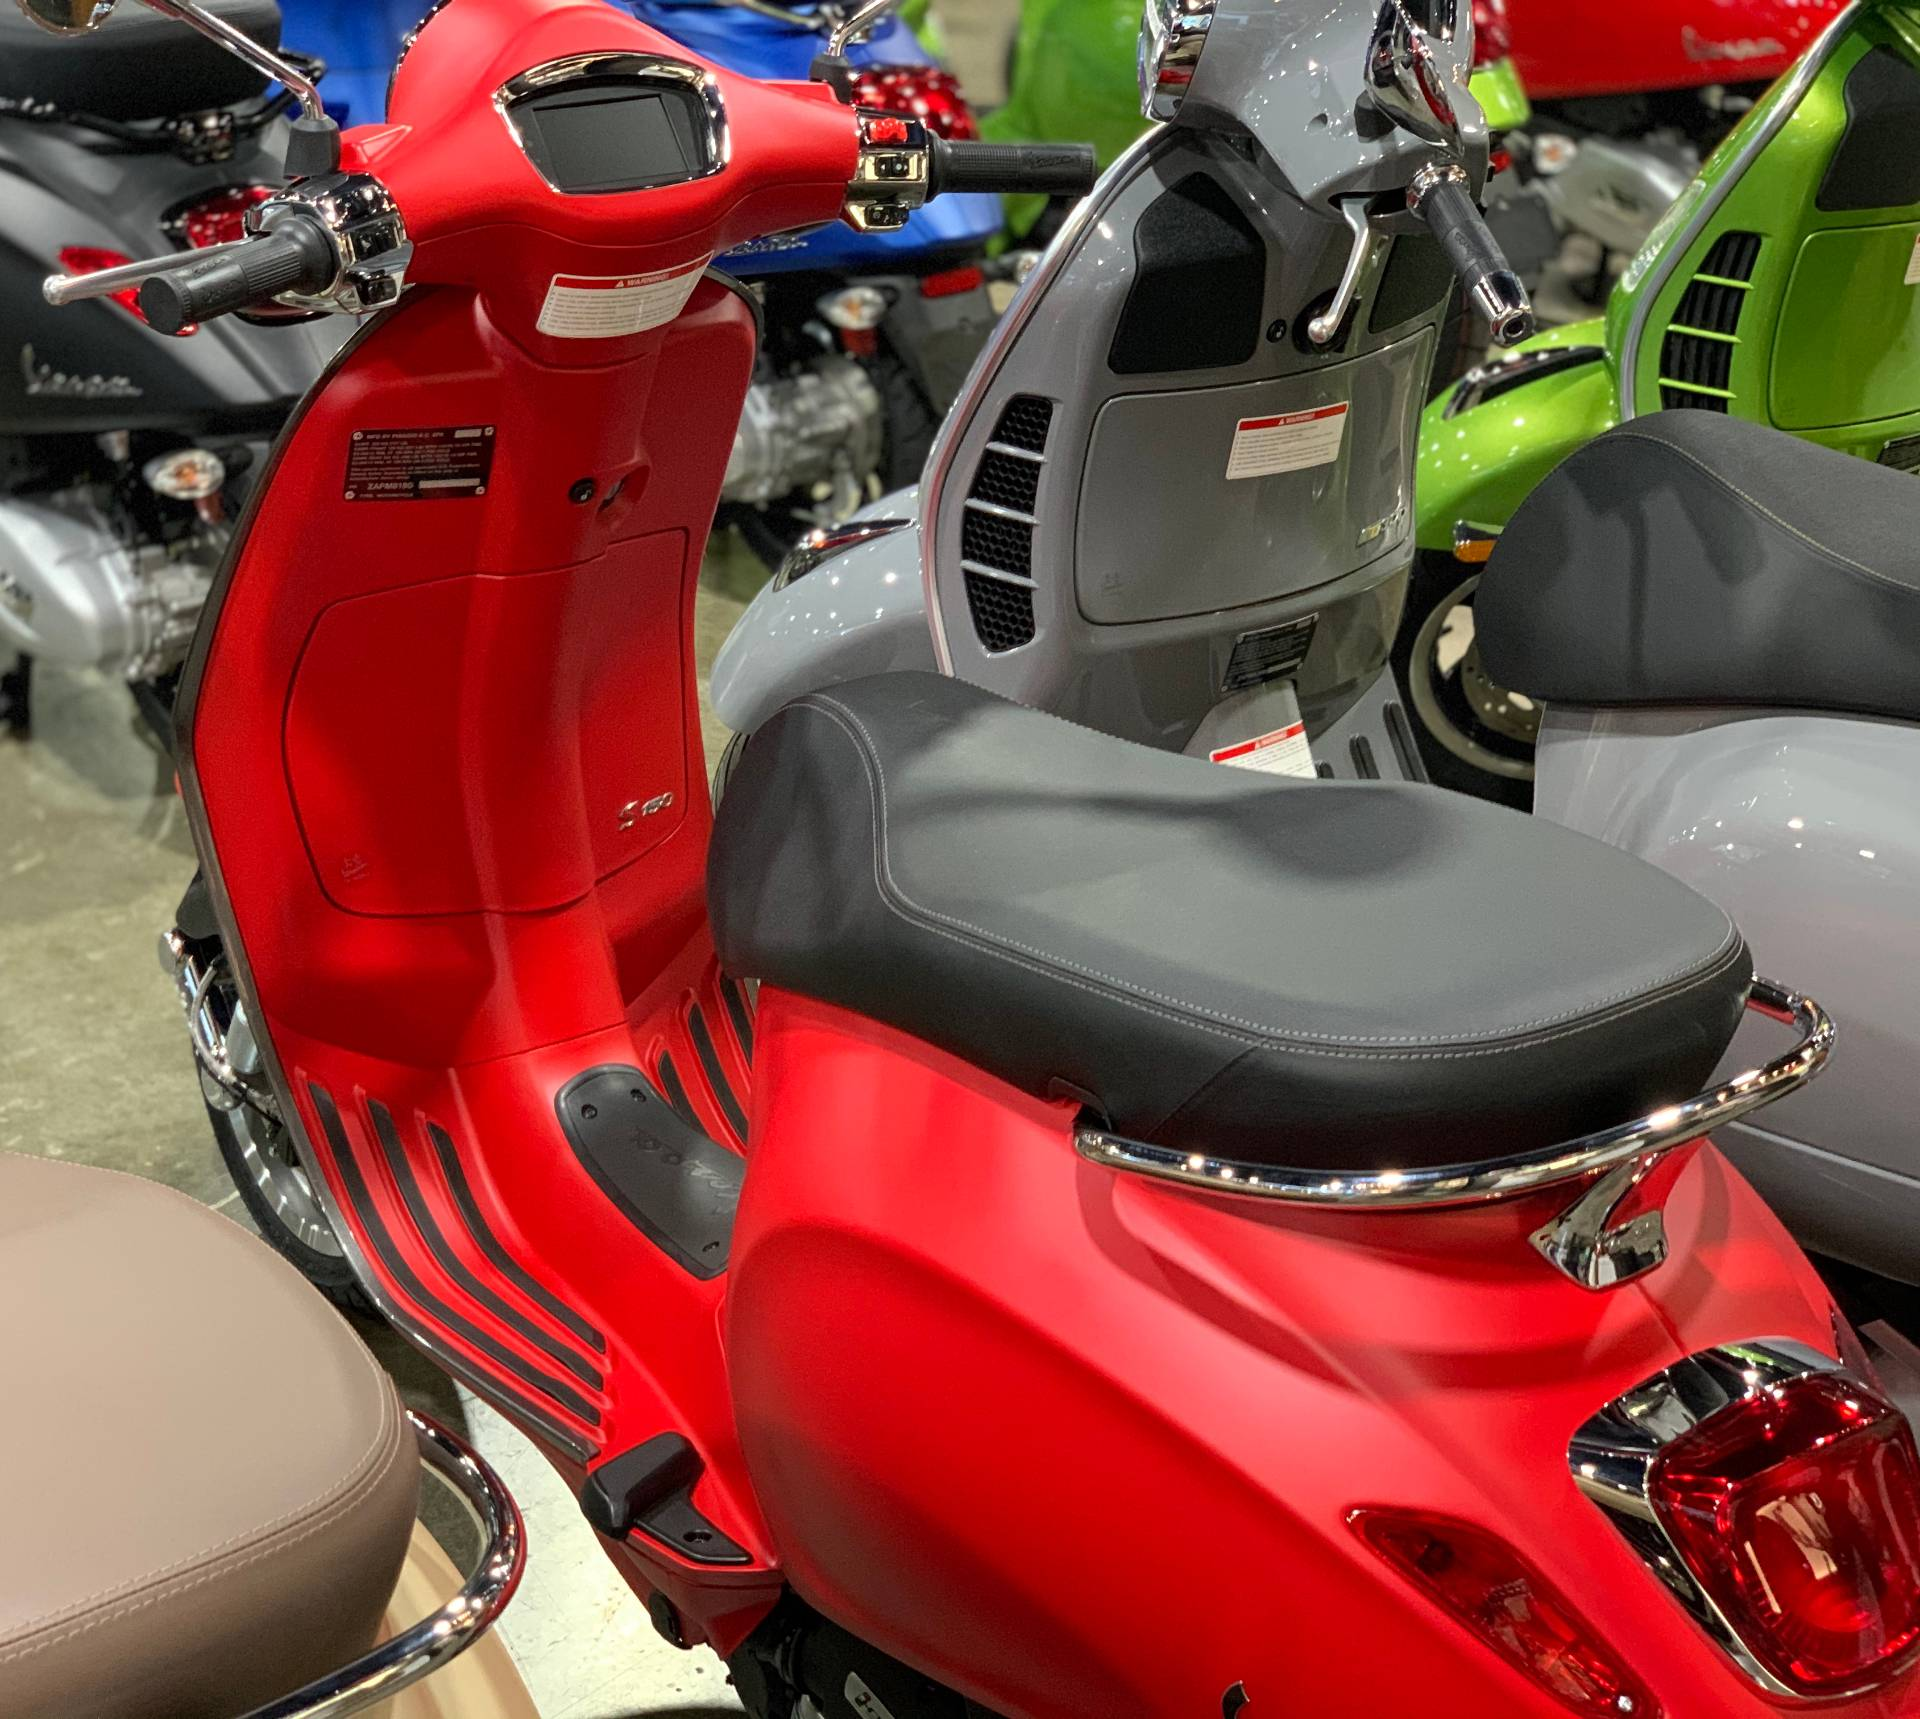 2020 Vespa Primavera 150 Sport in Plano, Texas - Photo 4